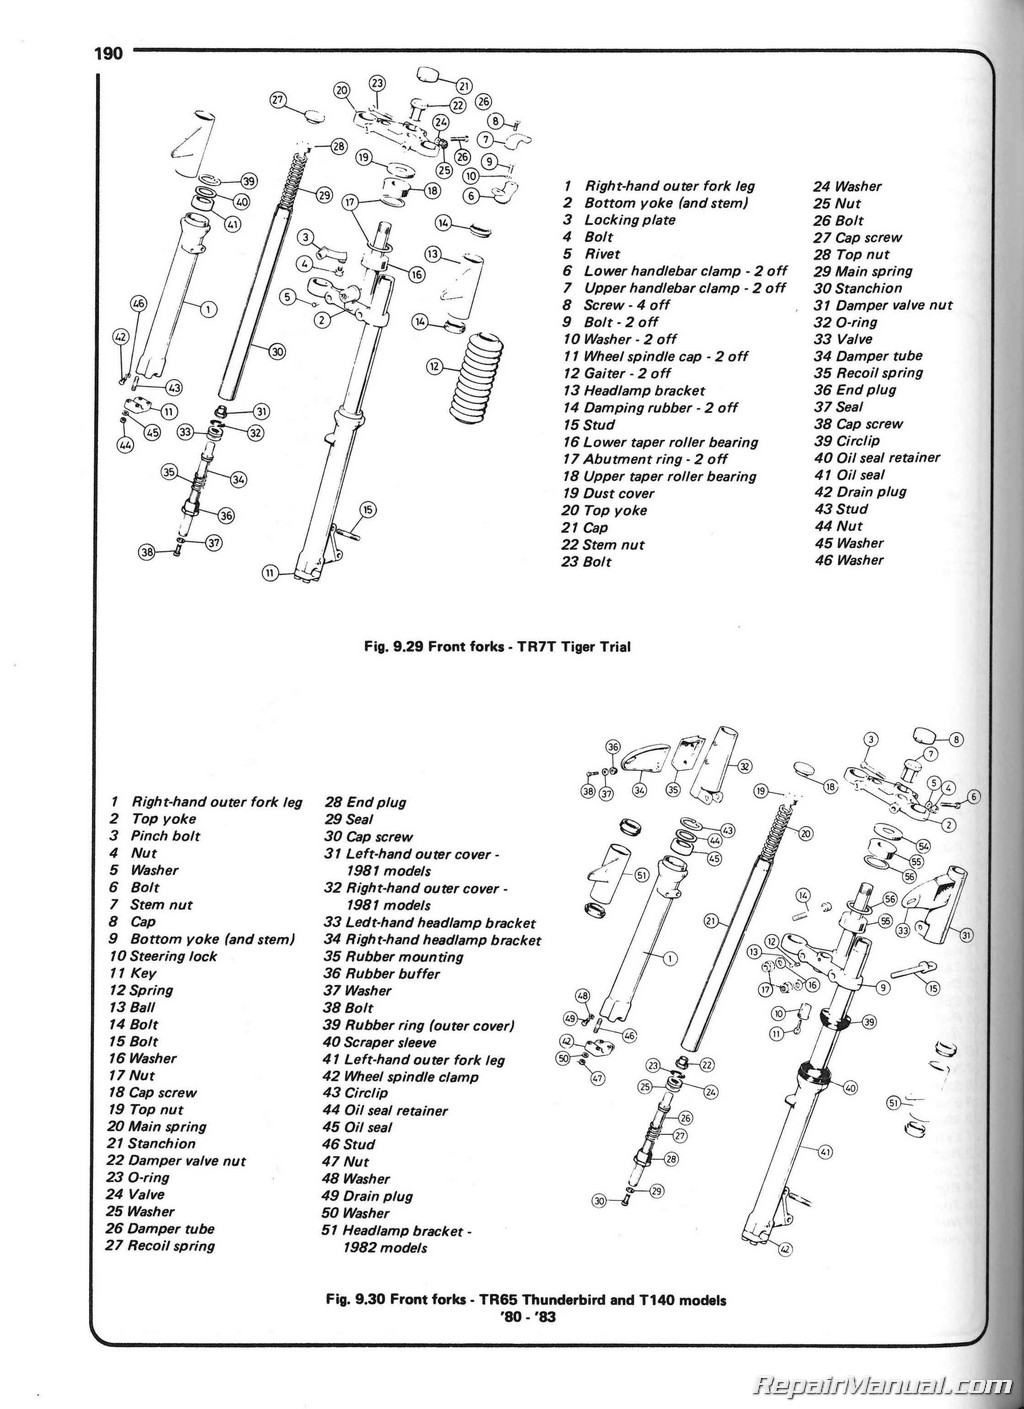 1989 Javelin Wiring Diagram Auto Electrical Boat